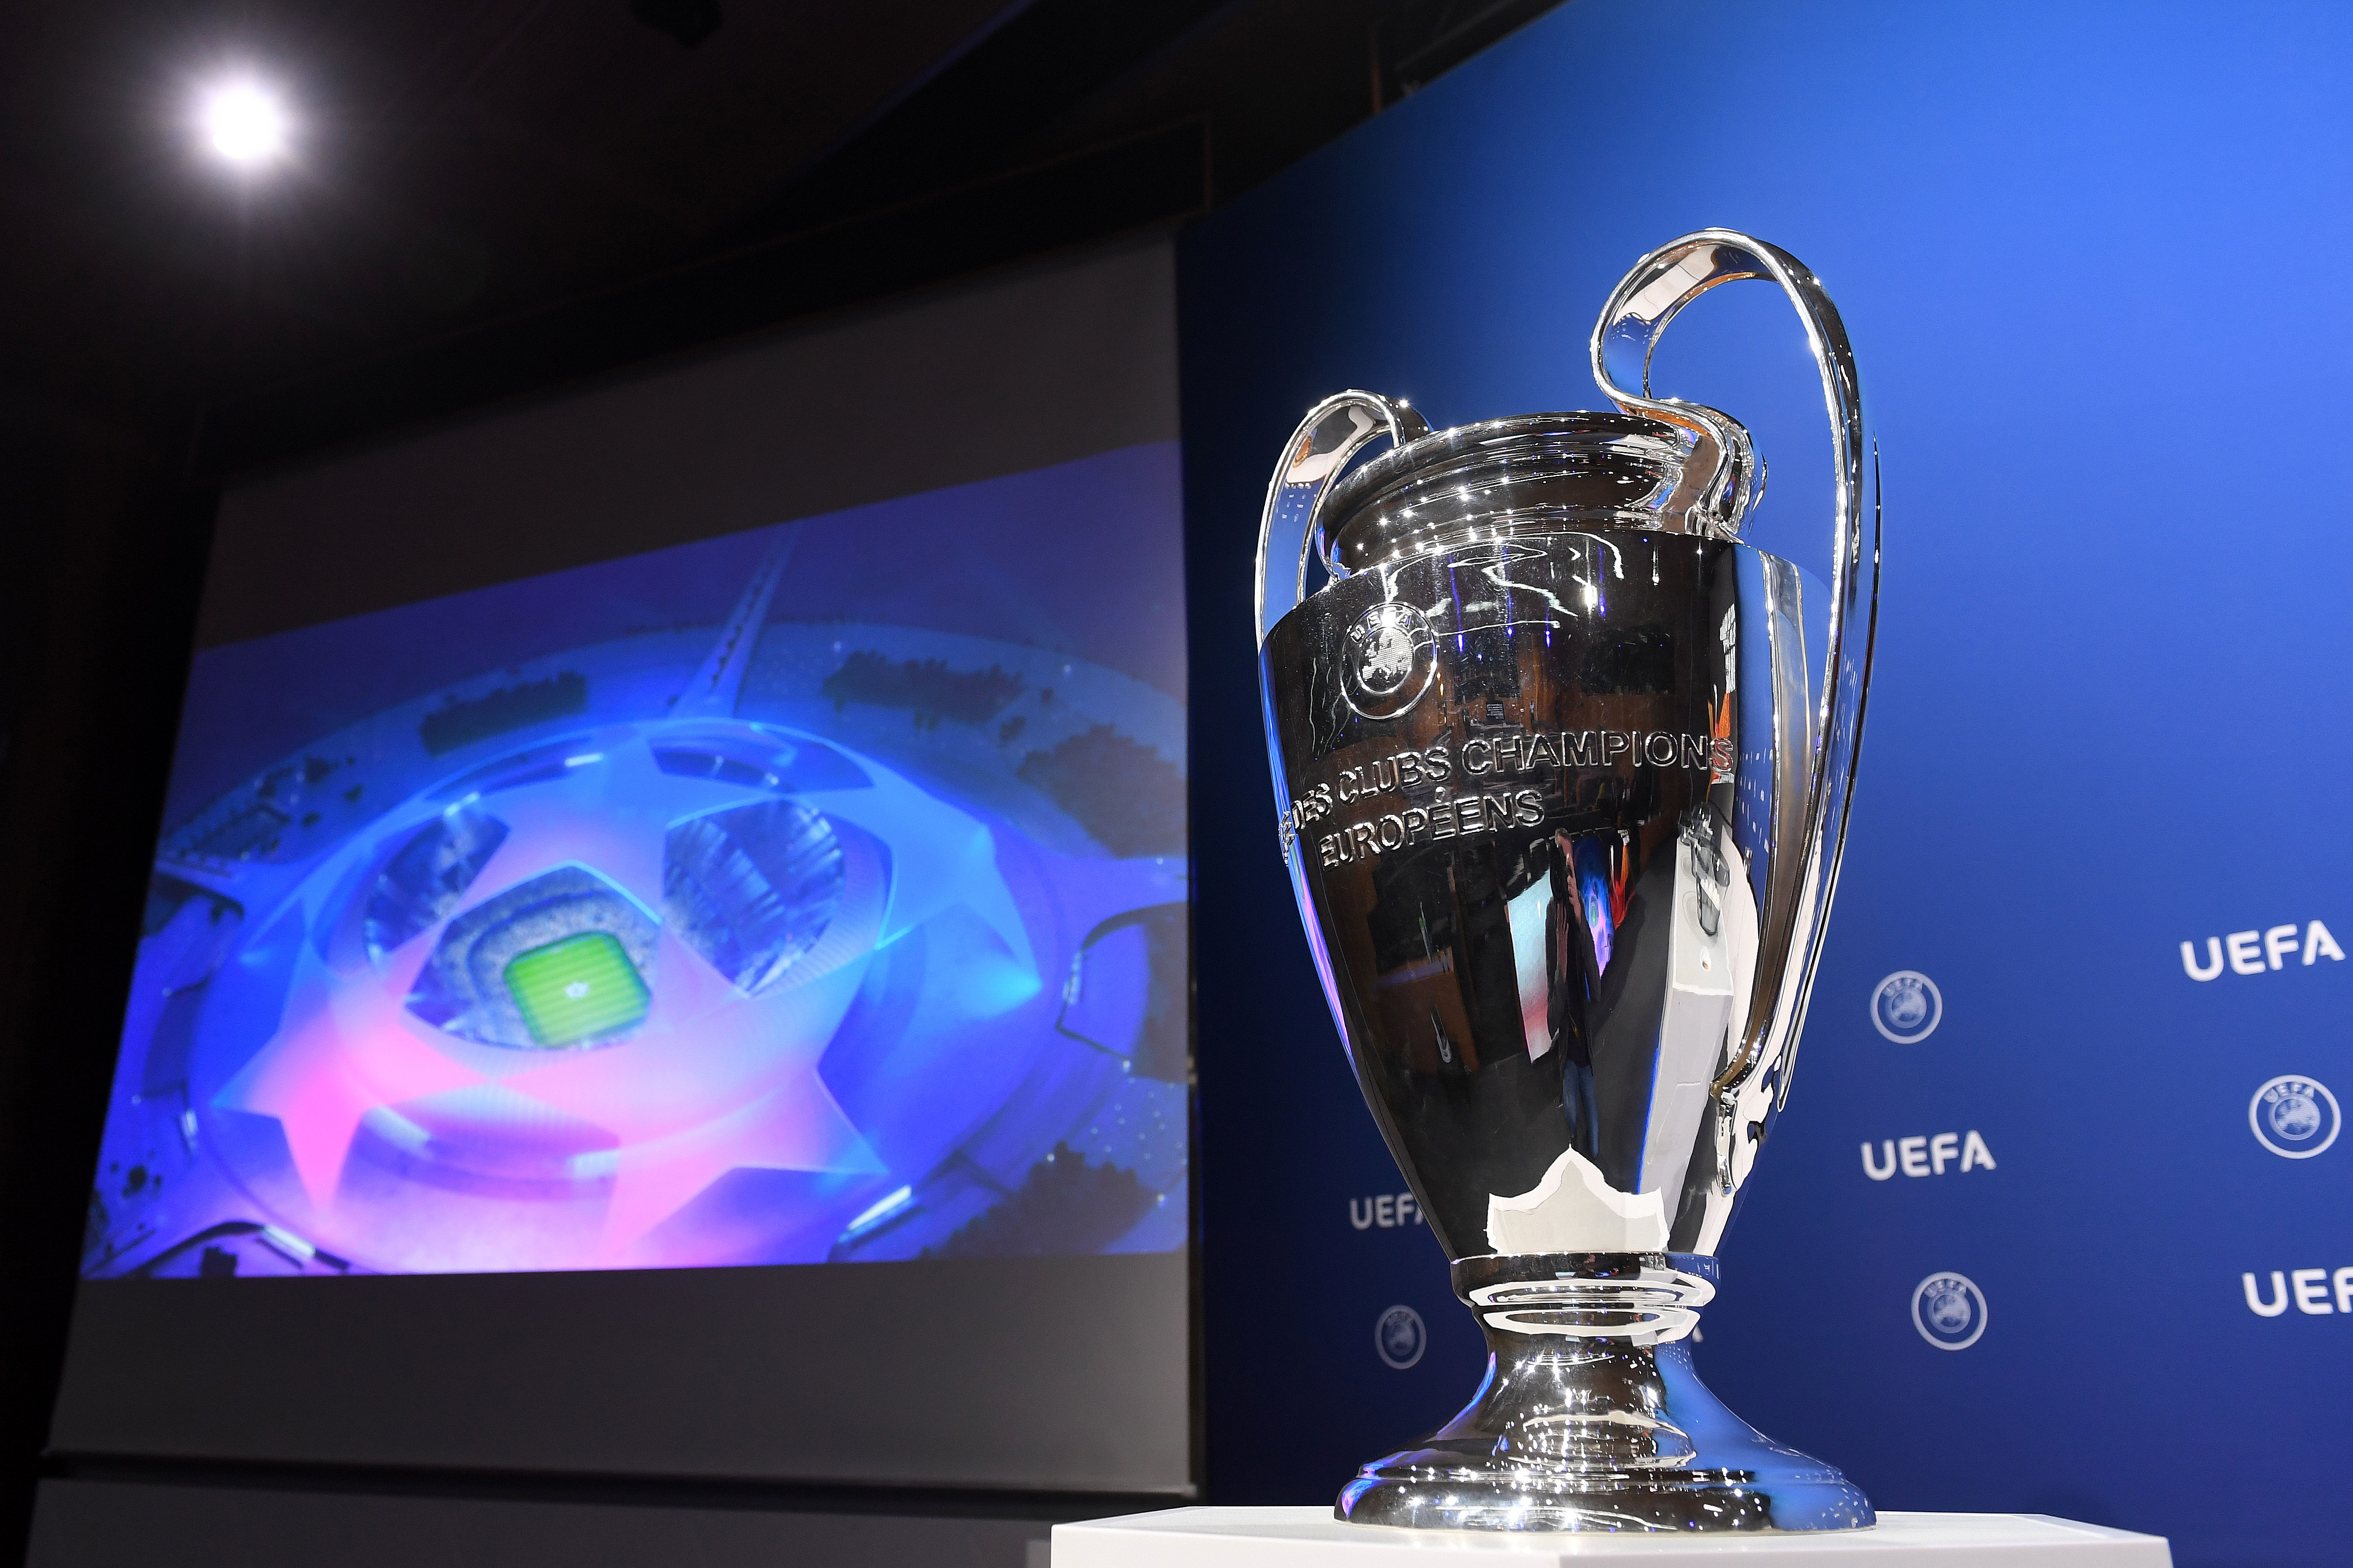 UEFA Champions League 2021/22 Play-offs Round Draw